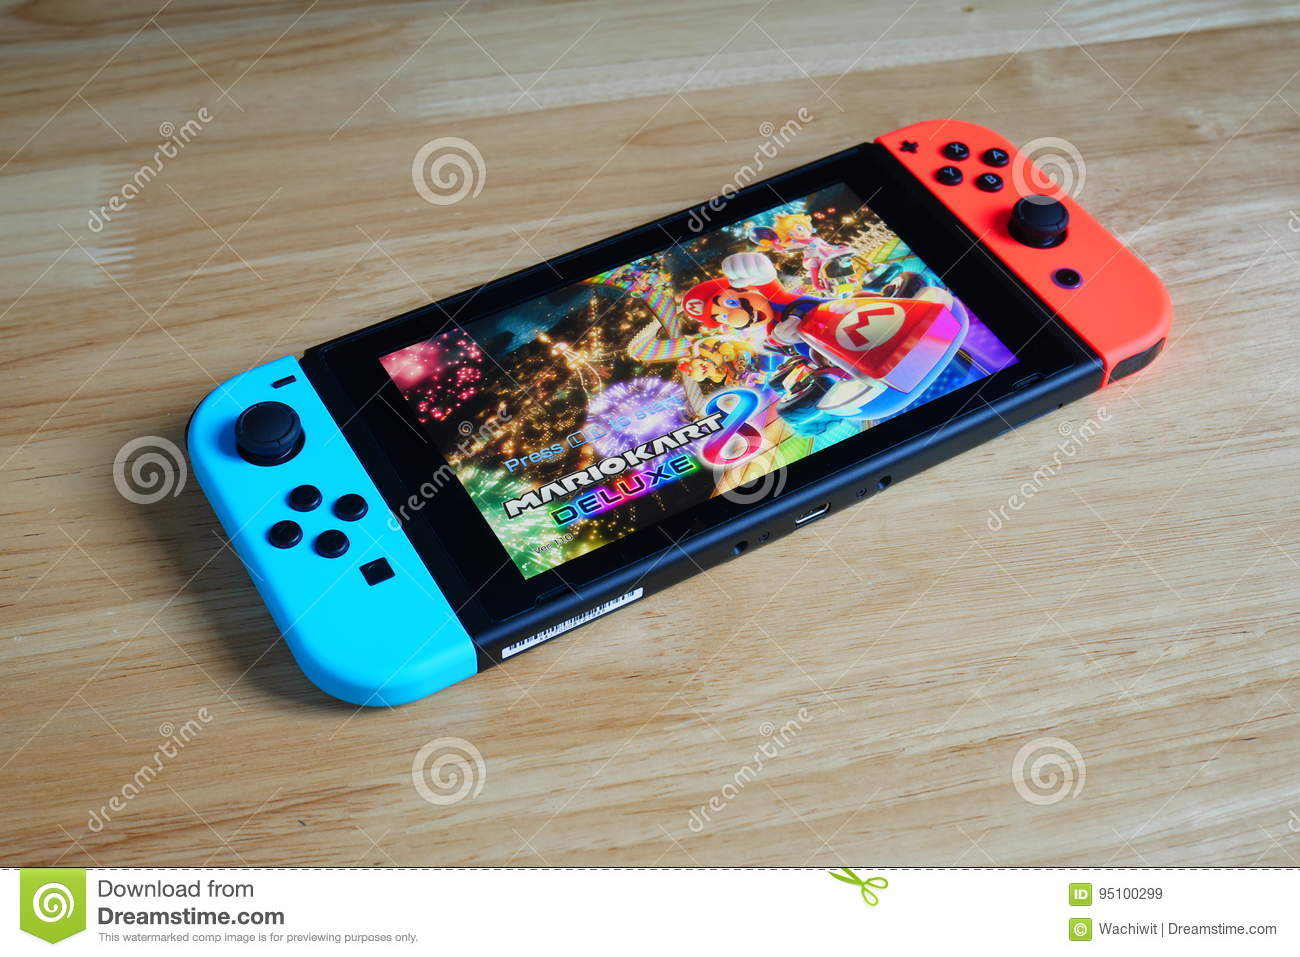 Nintendo Switch Showing Its Screen With Mario Kart 8 Deluxe